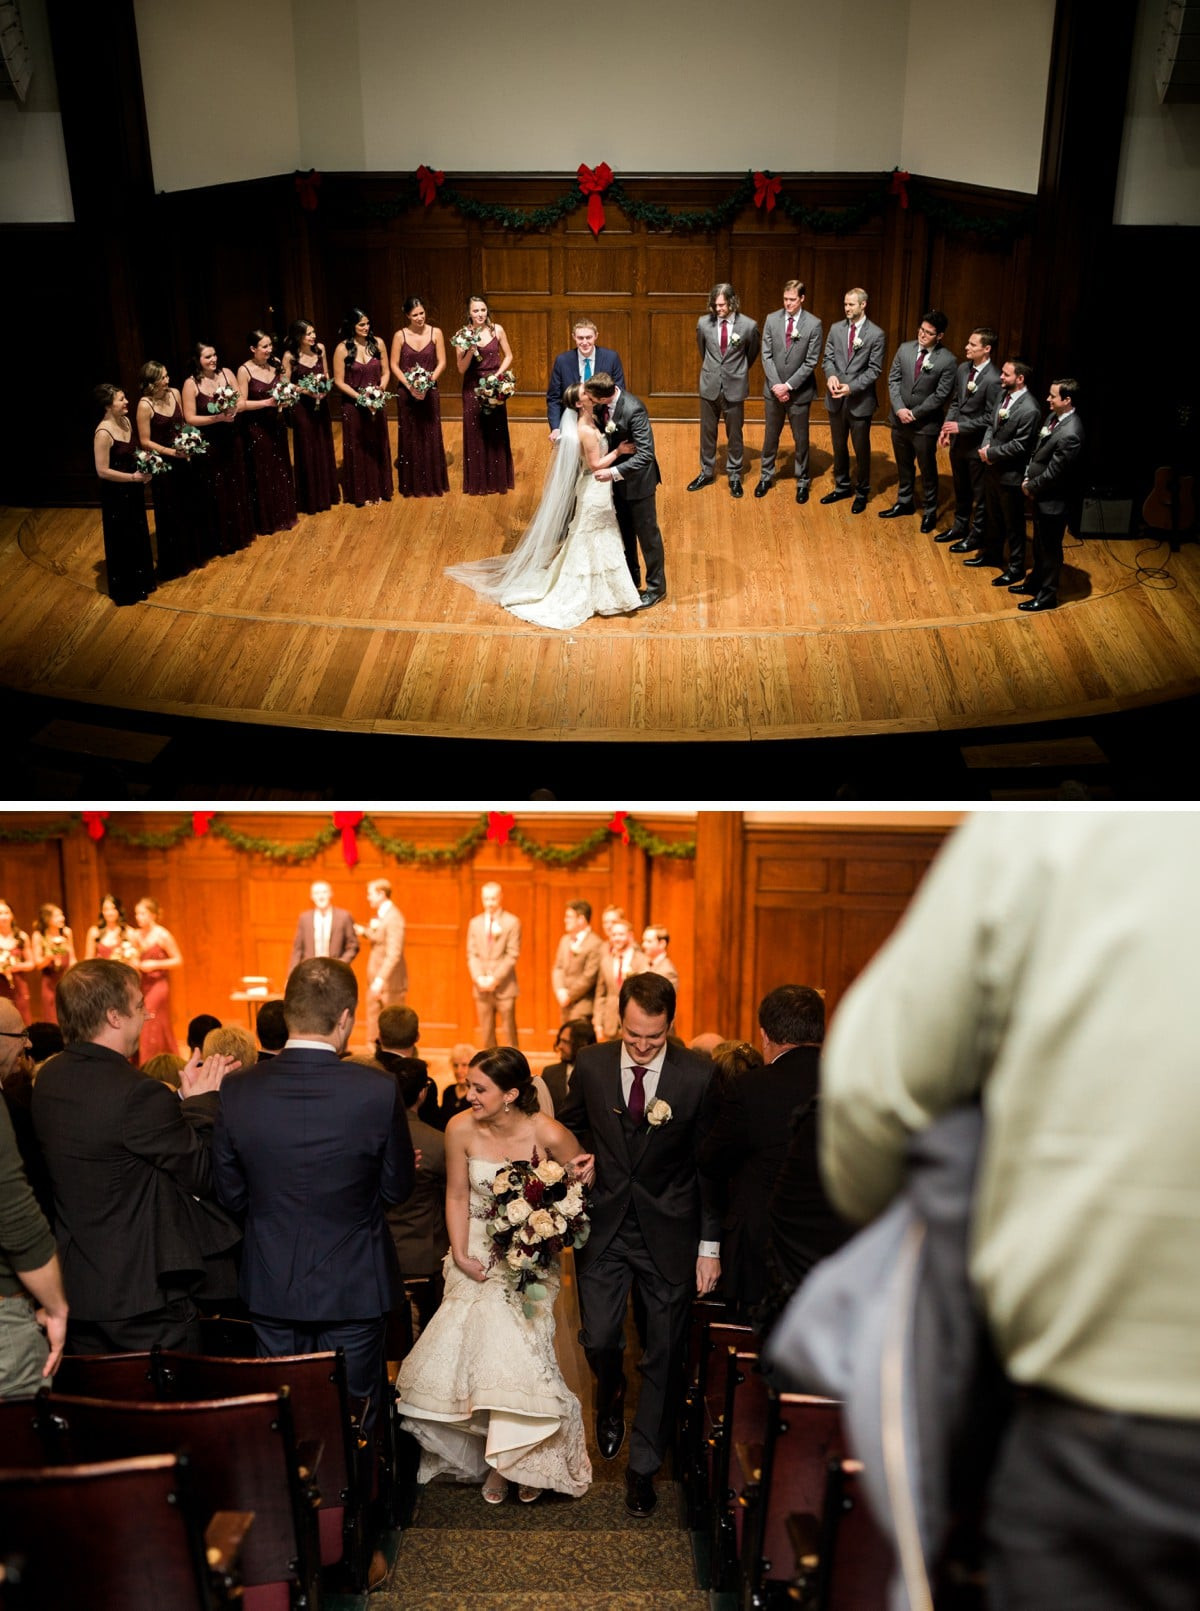 St. Louis Wedding Photographer, Wedding Ceremony at the Sheldon Concert Hall and Art Galleries